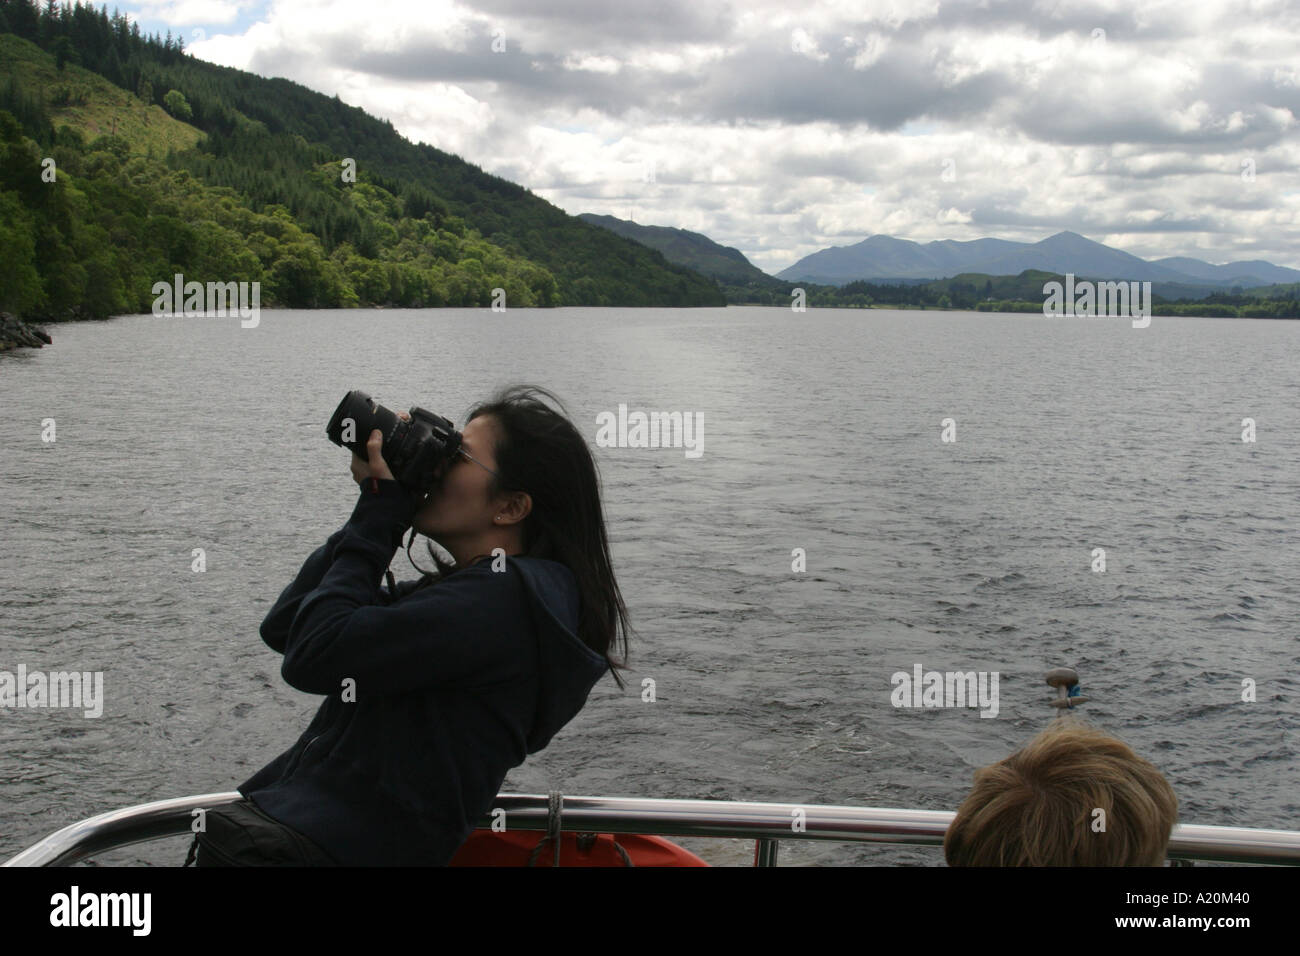 A tourist on a pleasure cruiser boat tour of Loch Ness tries to photograph the scenery, Scotland. - Stock Image